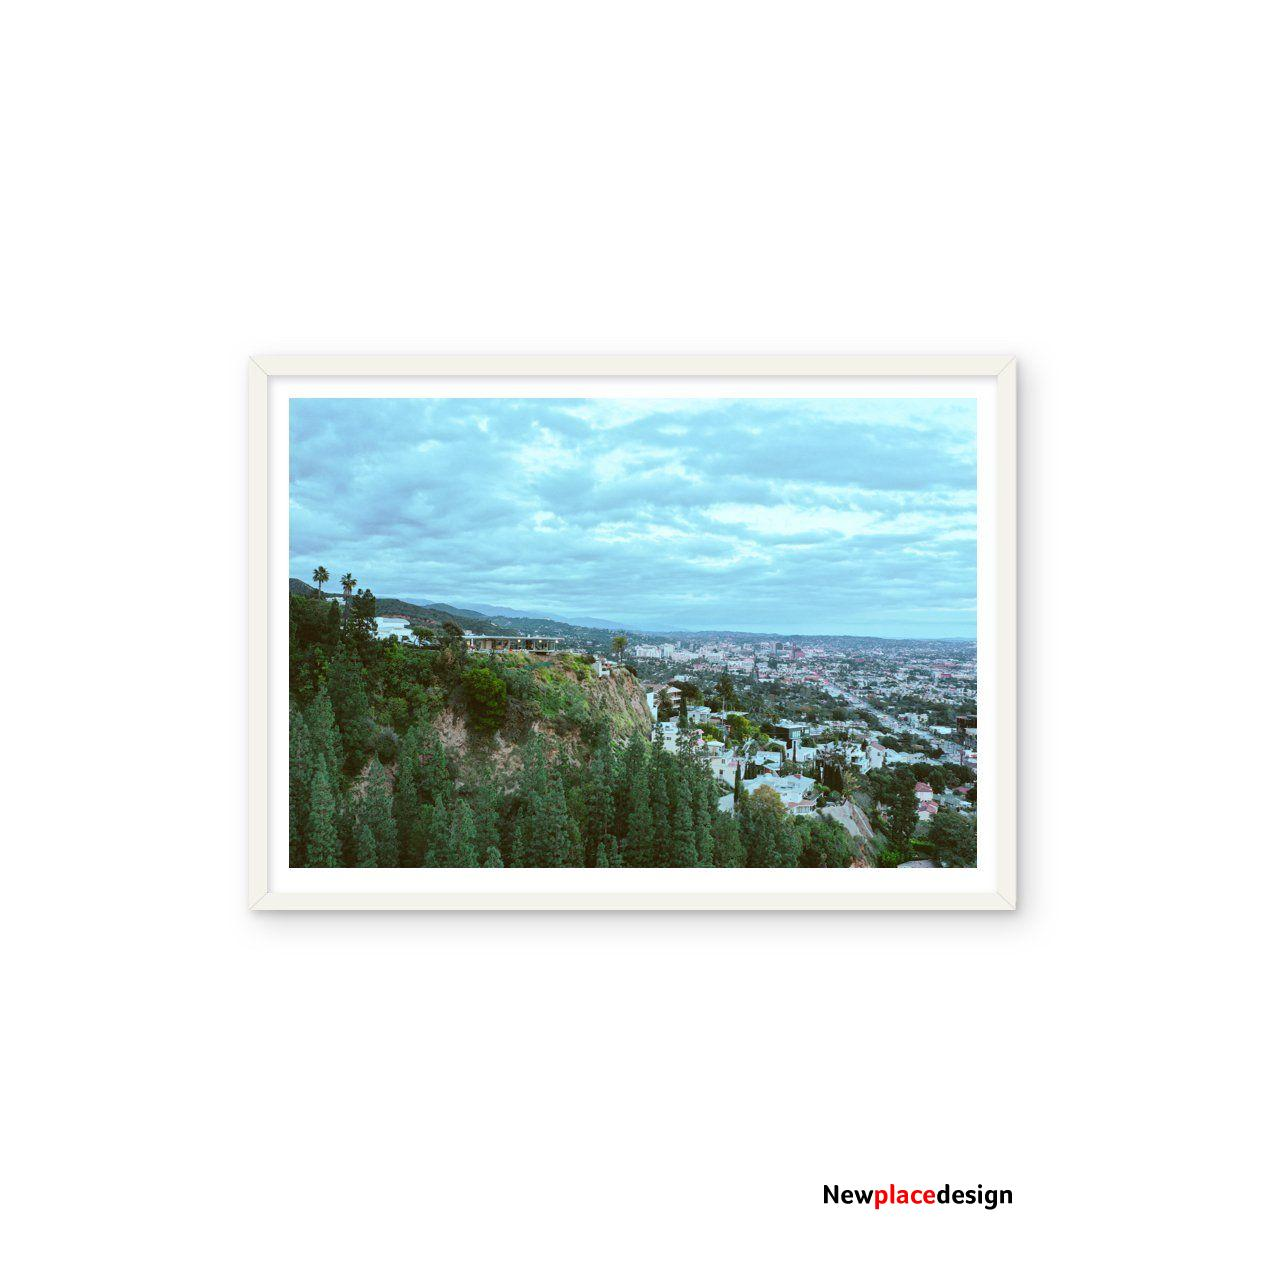 West Hollywood Hills Stahl House - 32x24 / White